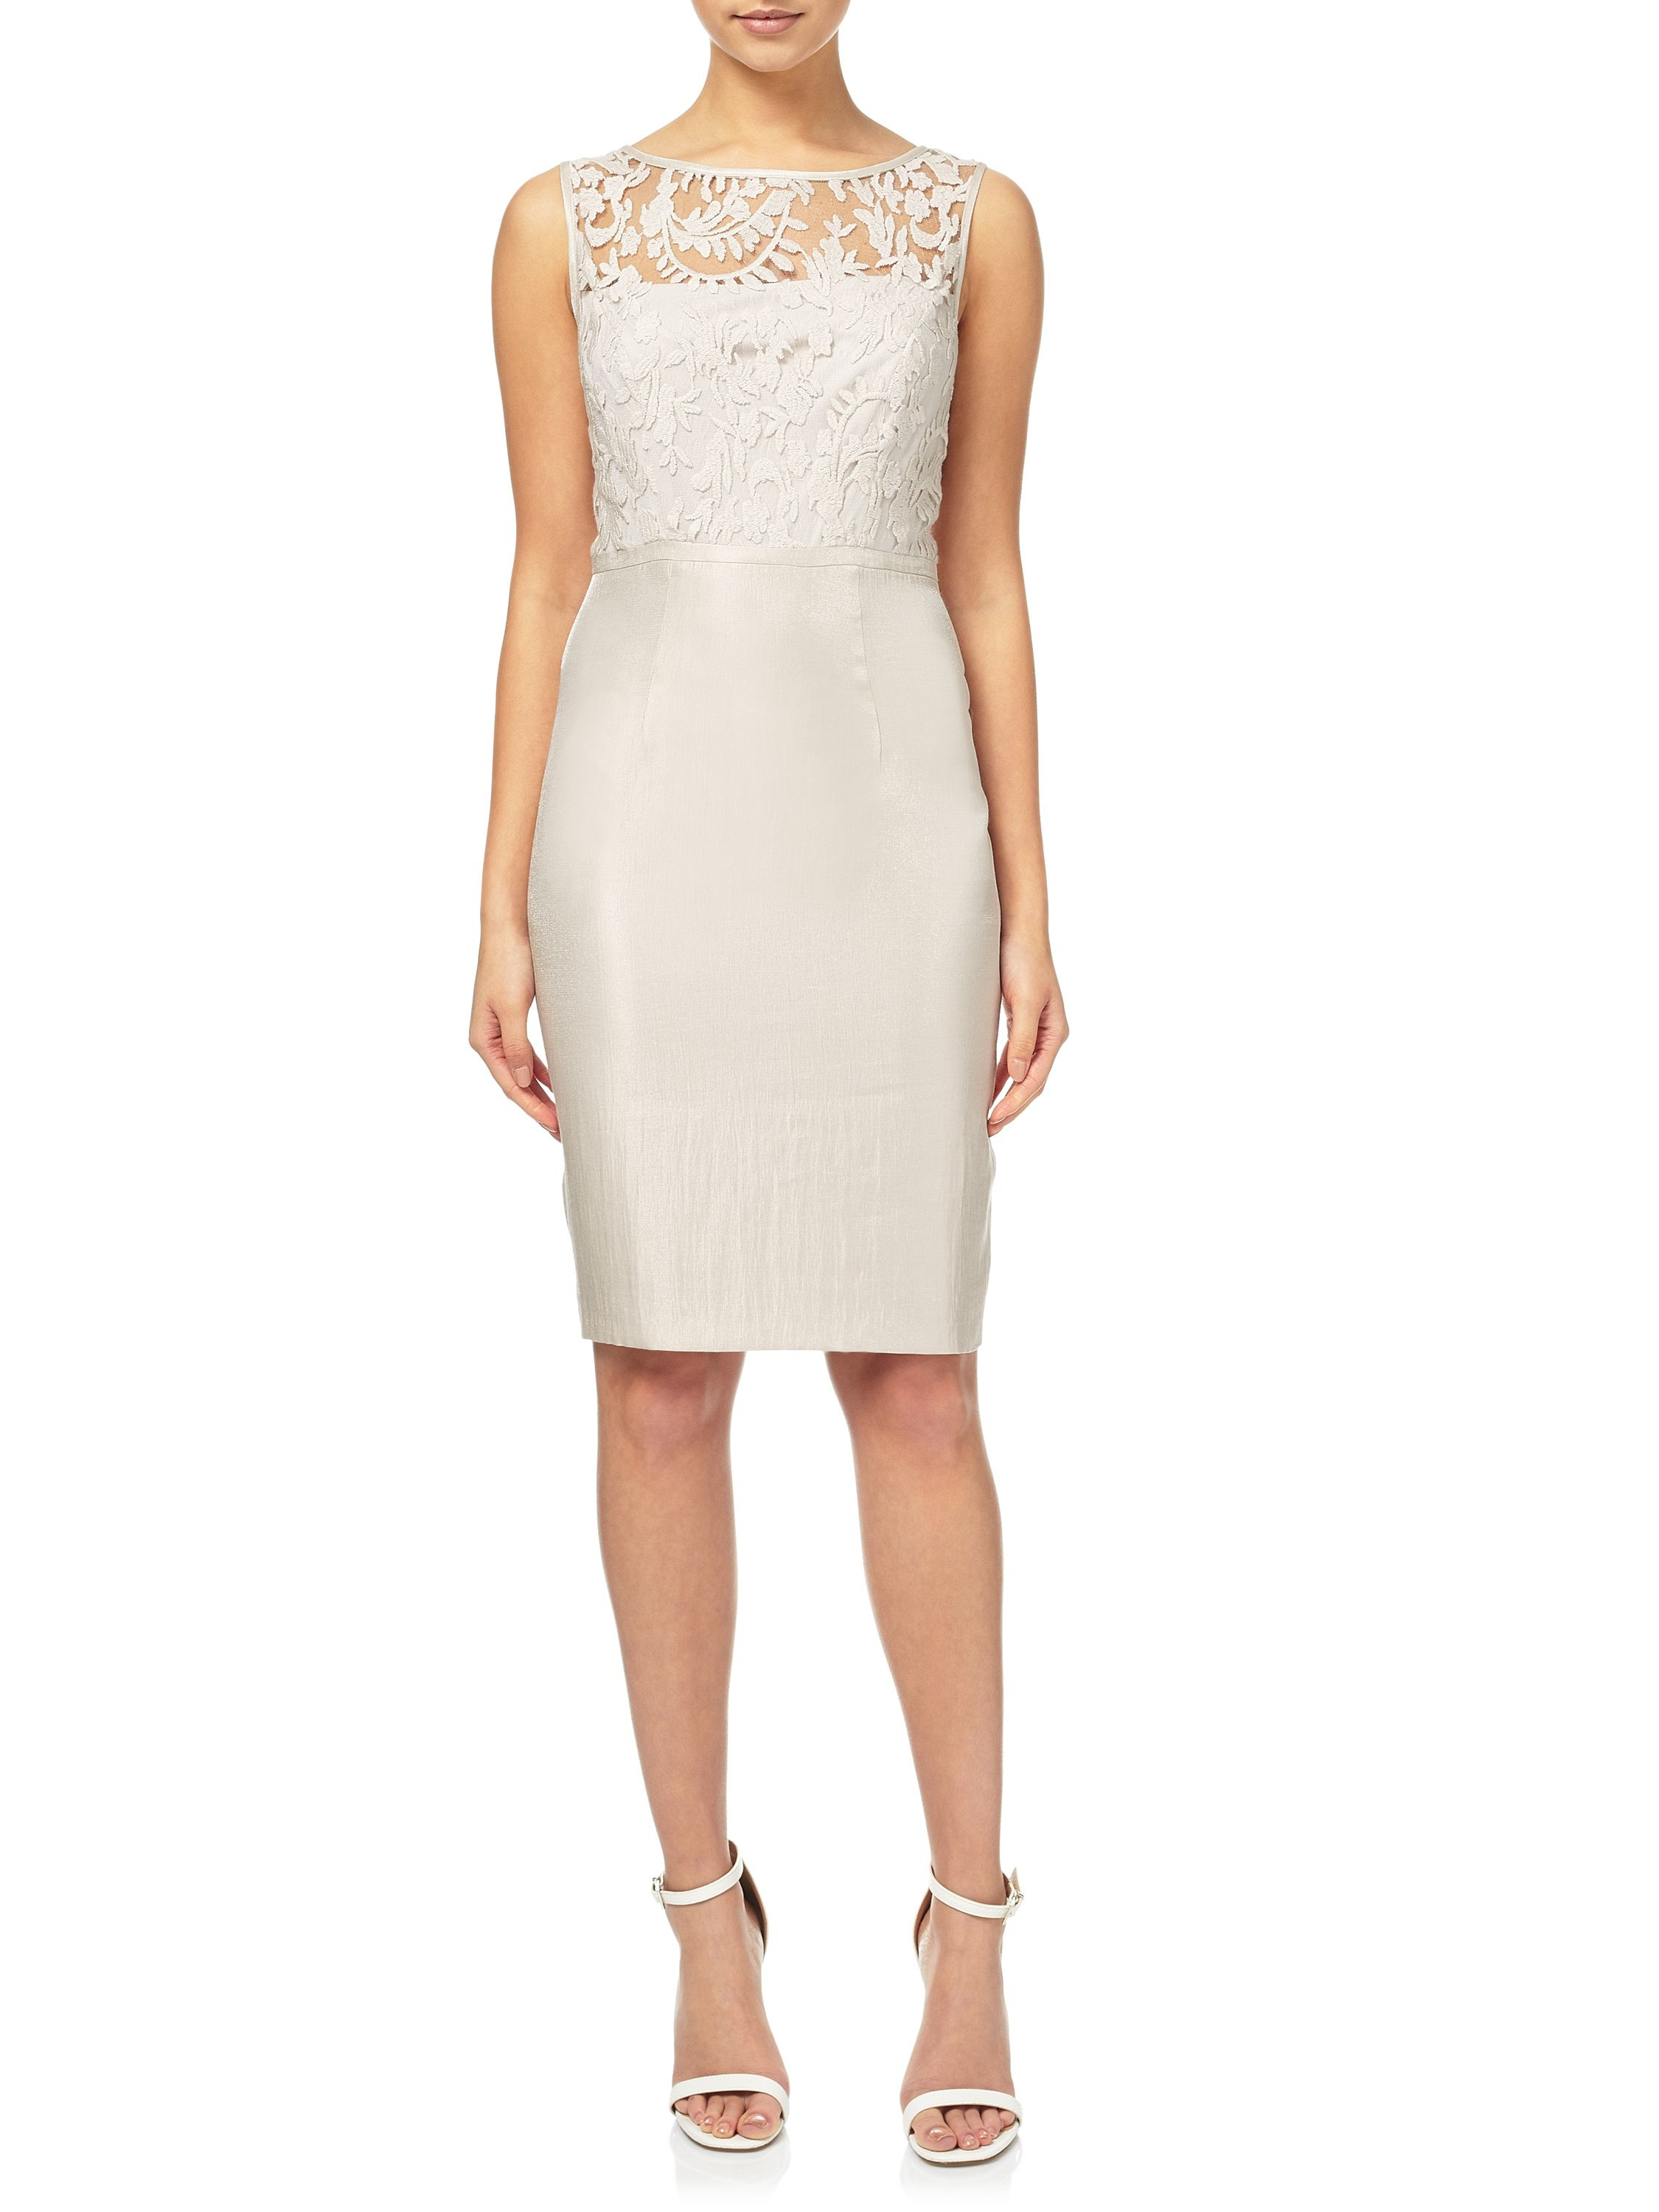 Adrianna papell Cocktail Dress And Duster Coat Set in White | Lyst